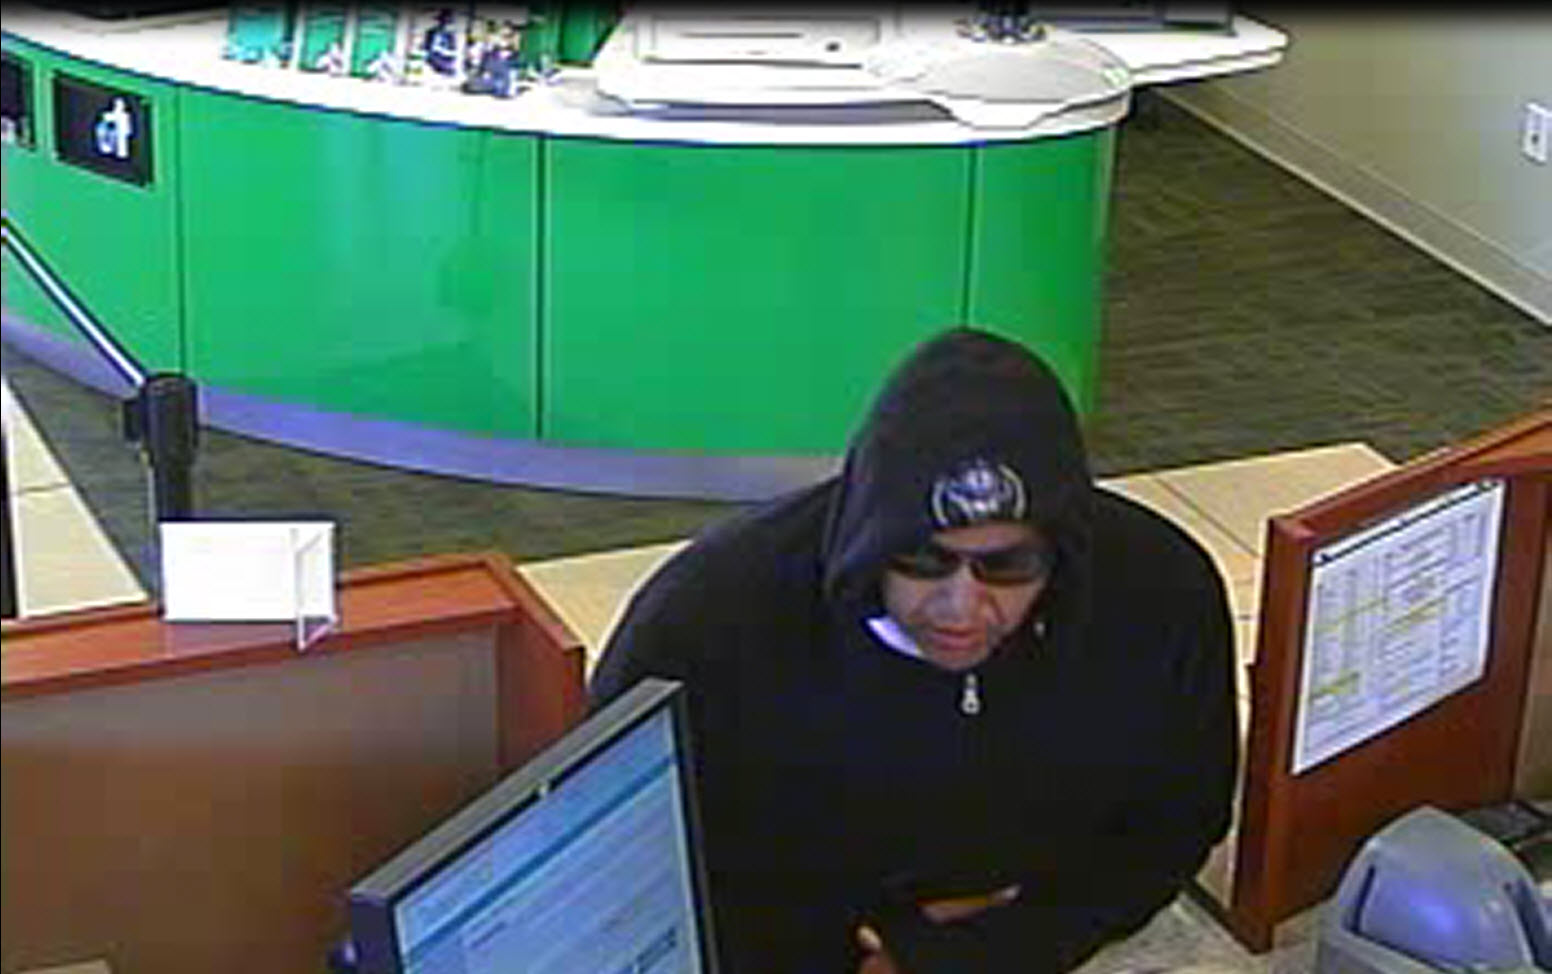 This surveillance image shows the man suspected of trying to rob the Associated Bank at 1482 W. Mason St., in Green Bay, June 21, 2018. (Image courtesy Green Bay Police Dept.)